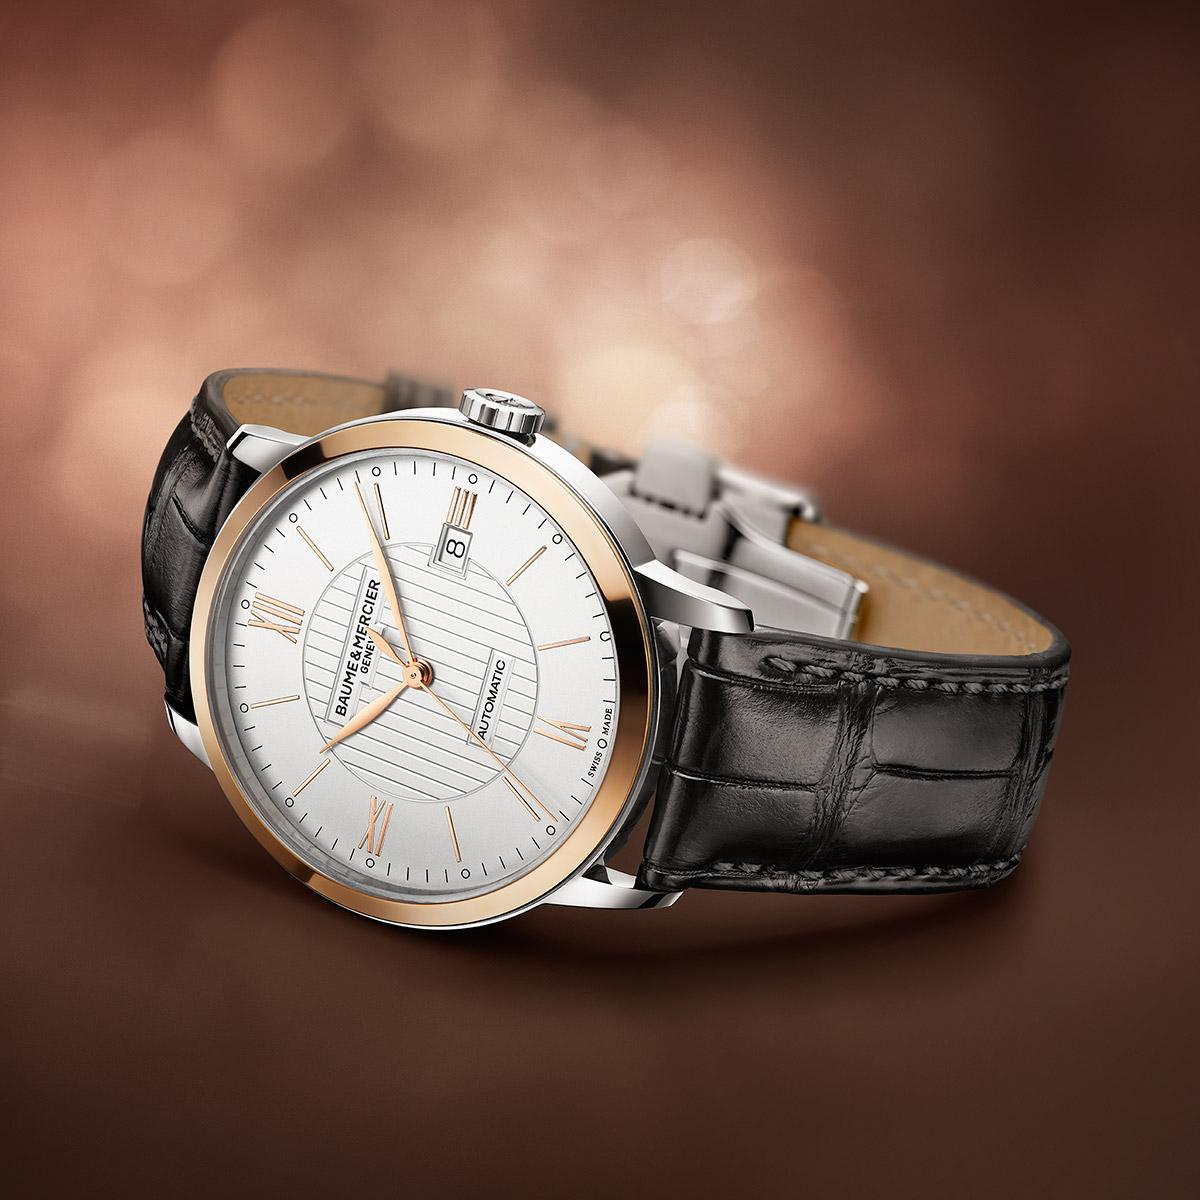 Made to encapsulate your ambitions. #Classima #luxurywatch http://t.co/S21BY3vbXt